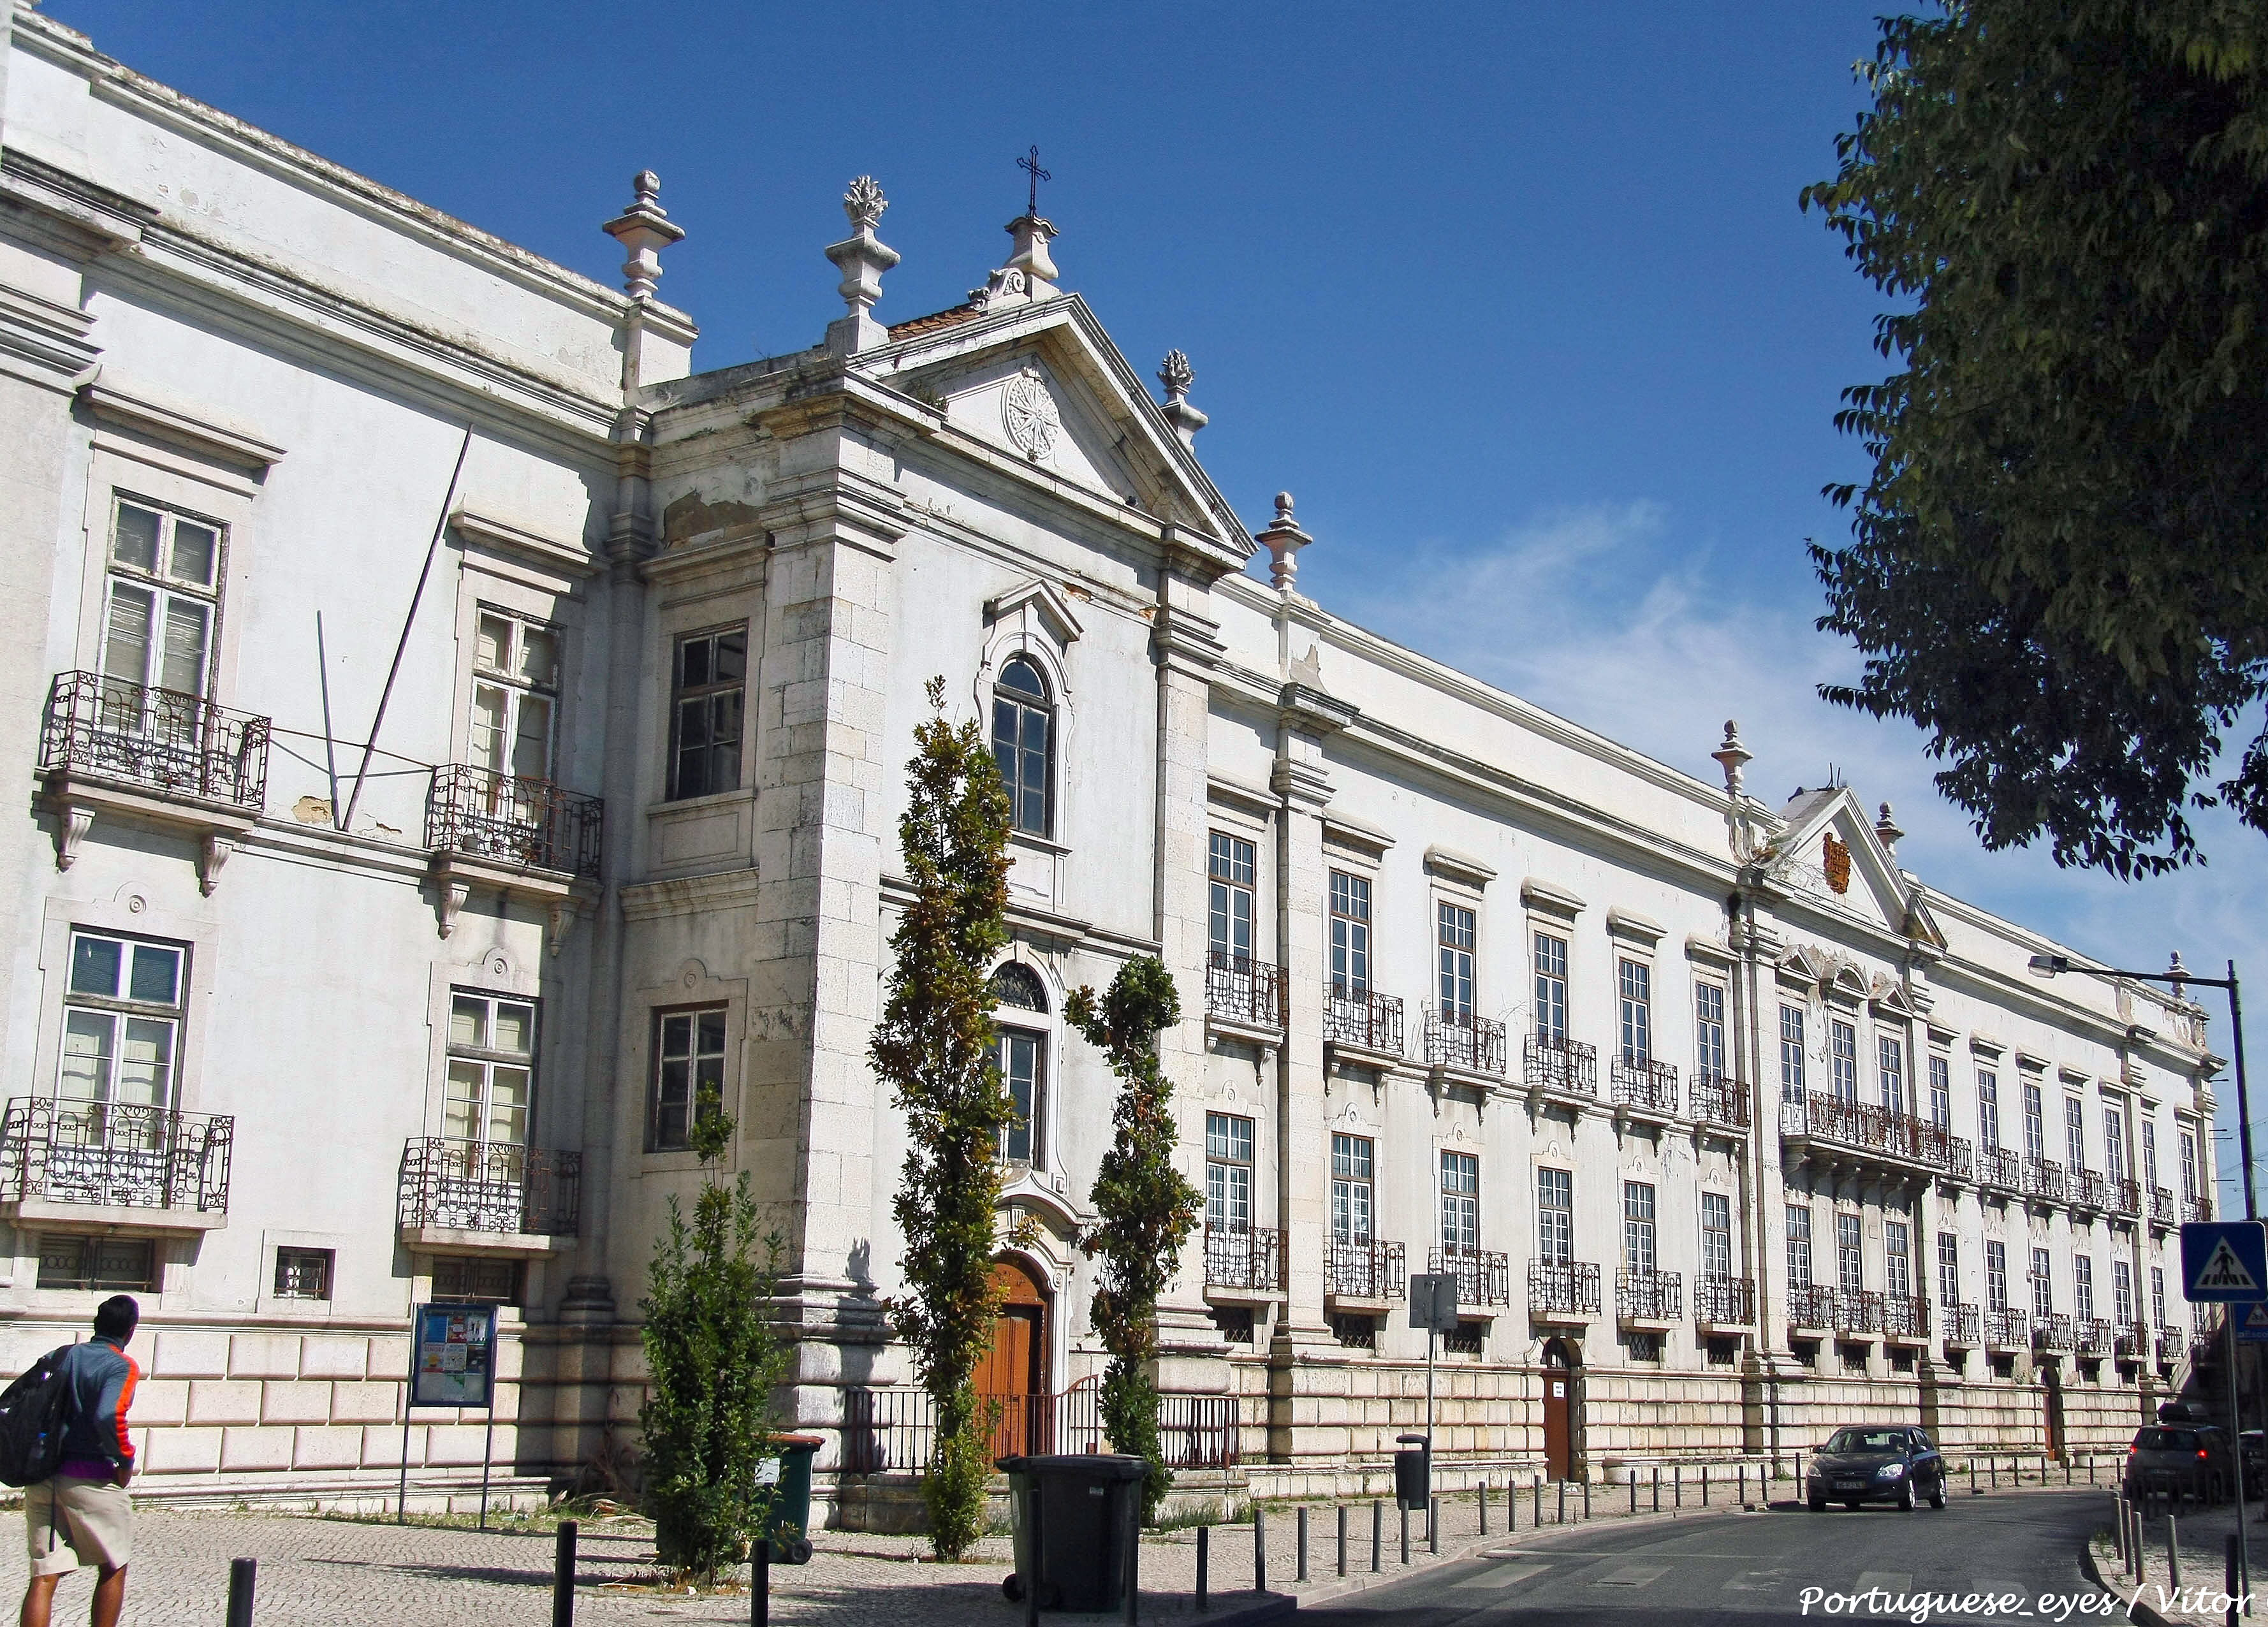 Top Museums and Art Galleries In Portugal top museums and art galleries Top Museums and Art Galleries In Portugal Convento da Madre de Deus   Lisboa   Portugal 44937976121 cropped